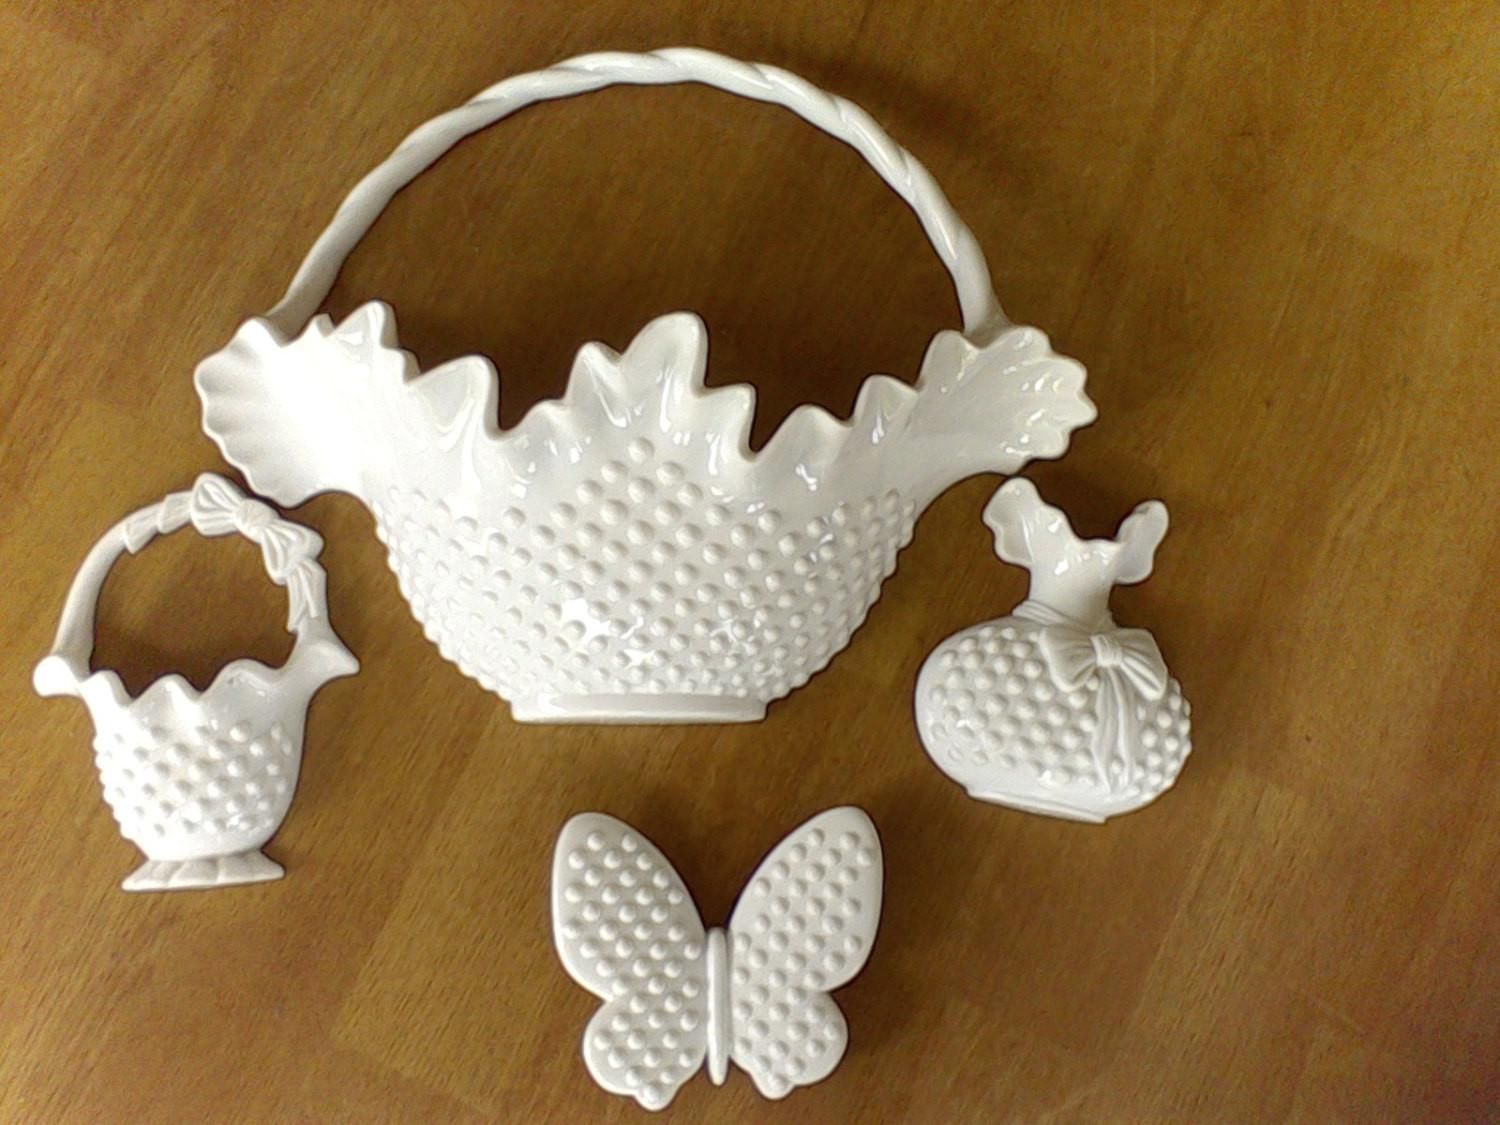 Basket Set Hobnail Wall Decor Burwoodmade Usa